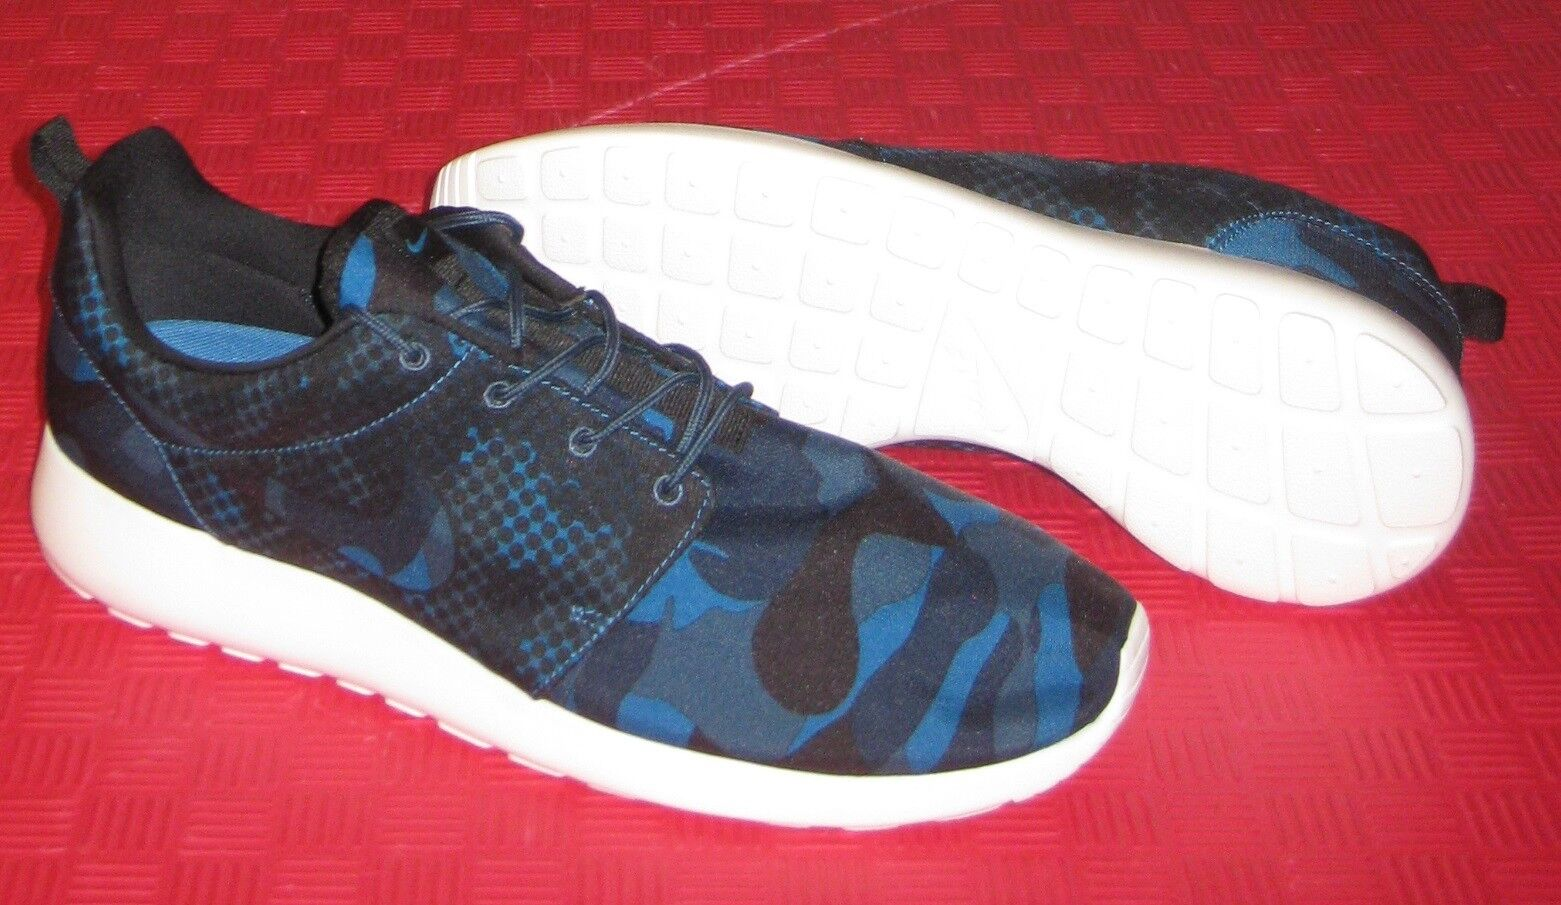 34dbe6c486310 NIKE ROSHE ONE PRINT ATHLETIC CASUAL SHOES SHOES SHOES 655206 404 SZ 13  BLUE CAMO NWOB